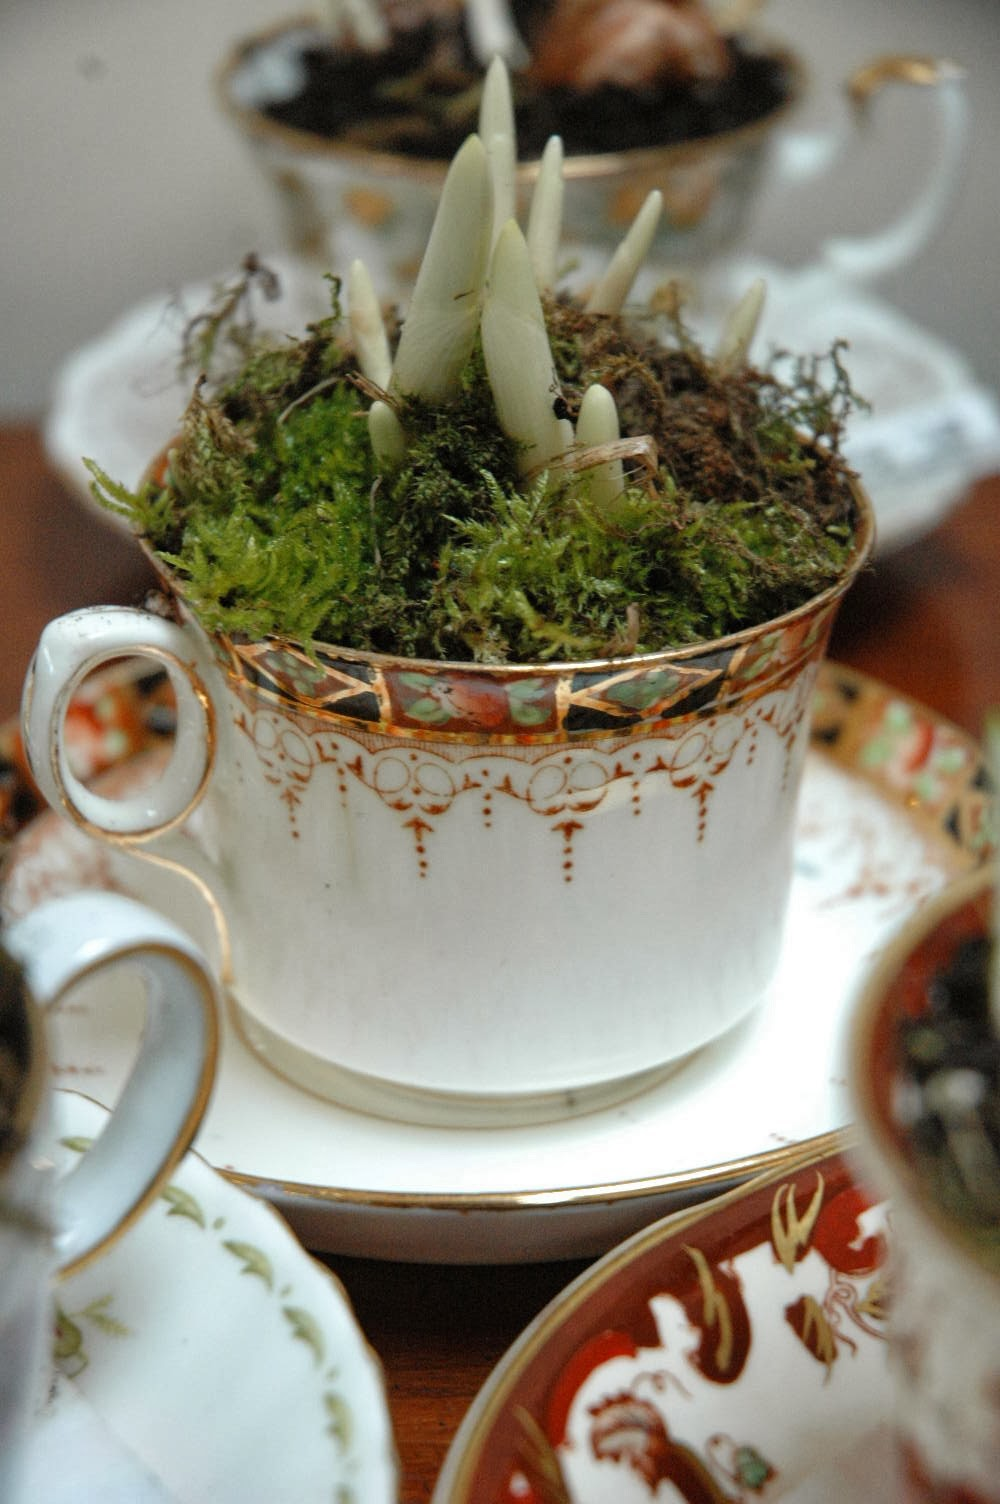 An old imari teacup is now a planter for purple 'Flower Record' crocuses.